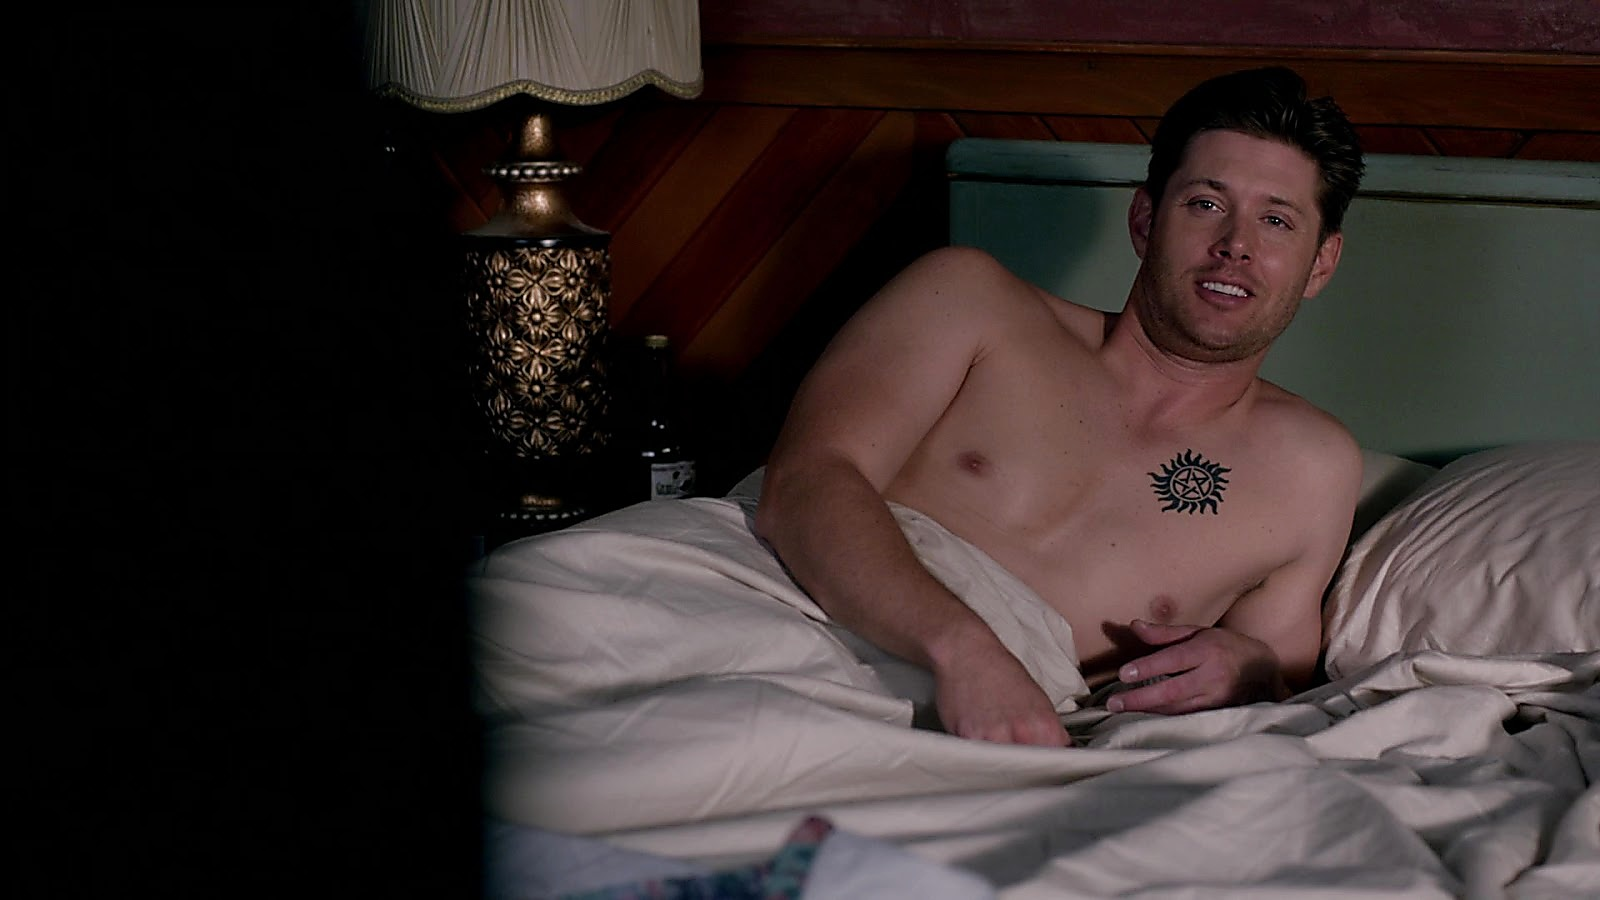 Jensen Ackles sexy shirtless scene April 13, 2020, 10am